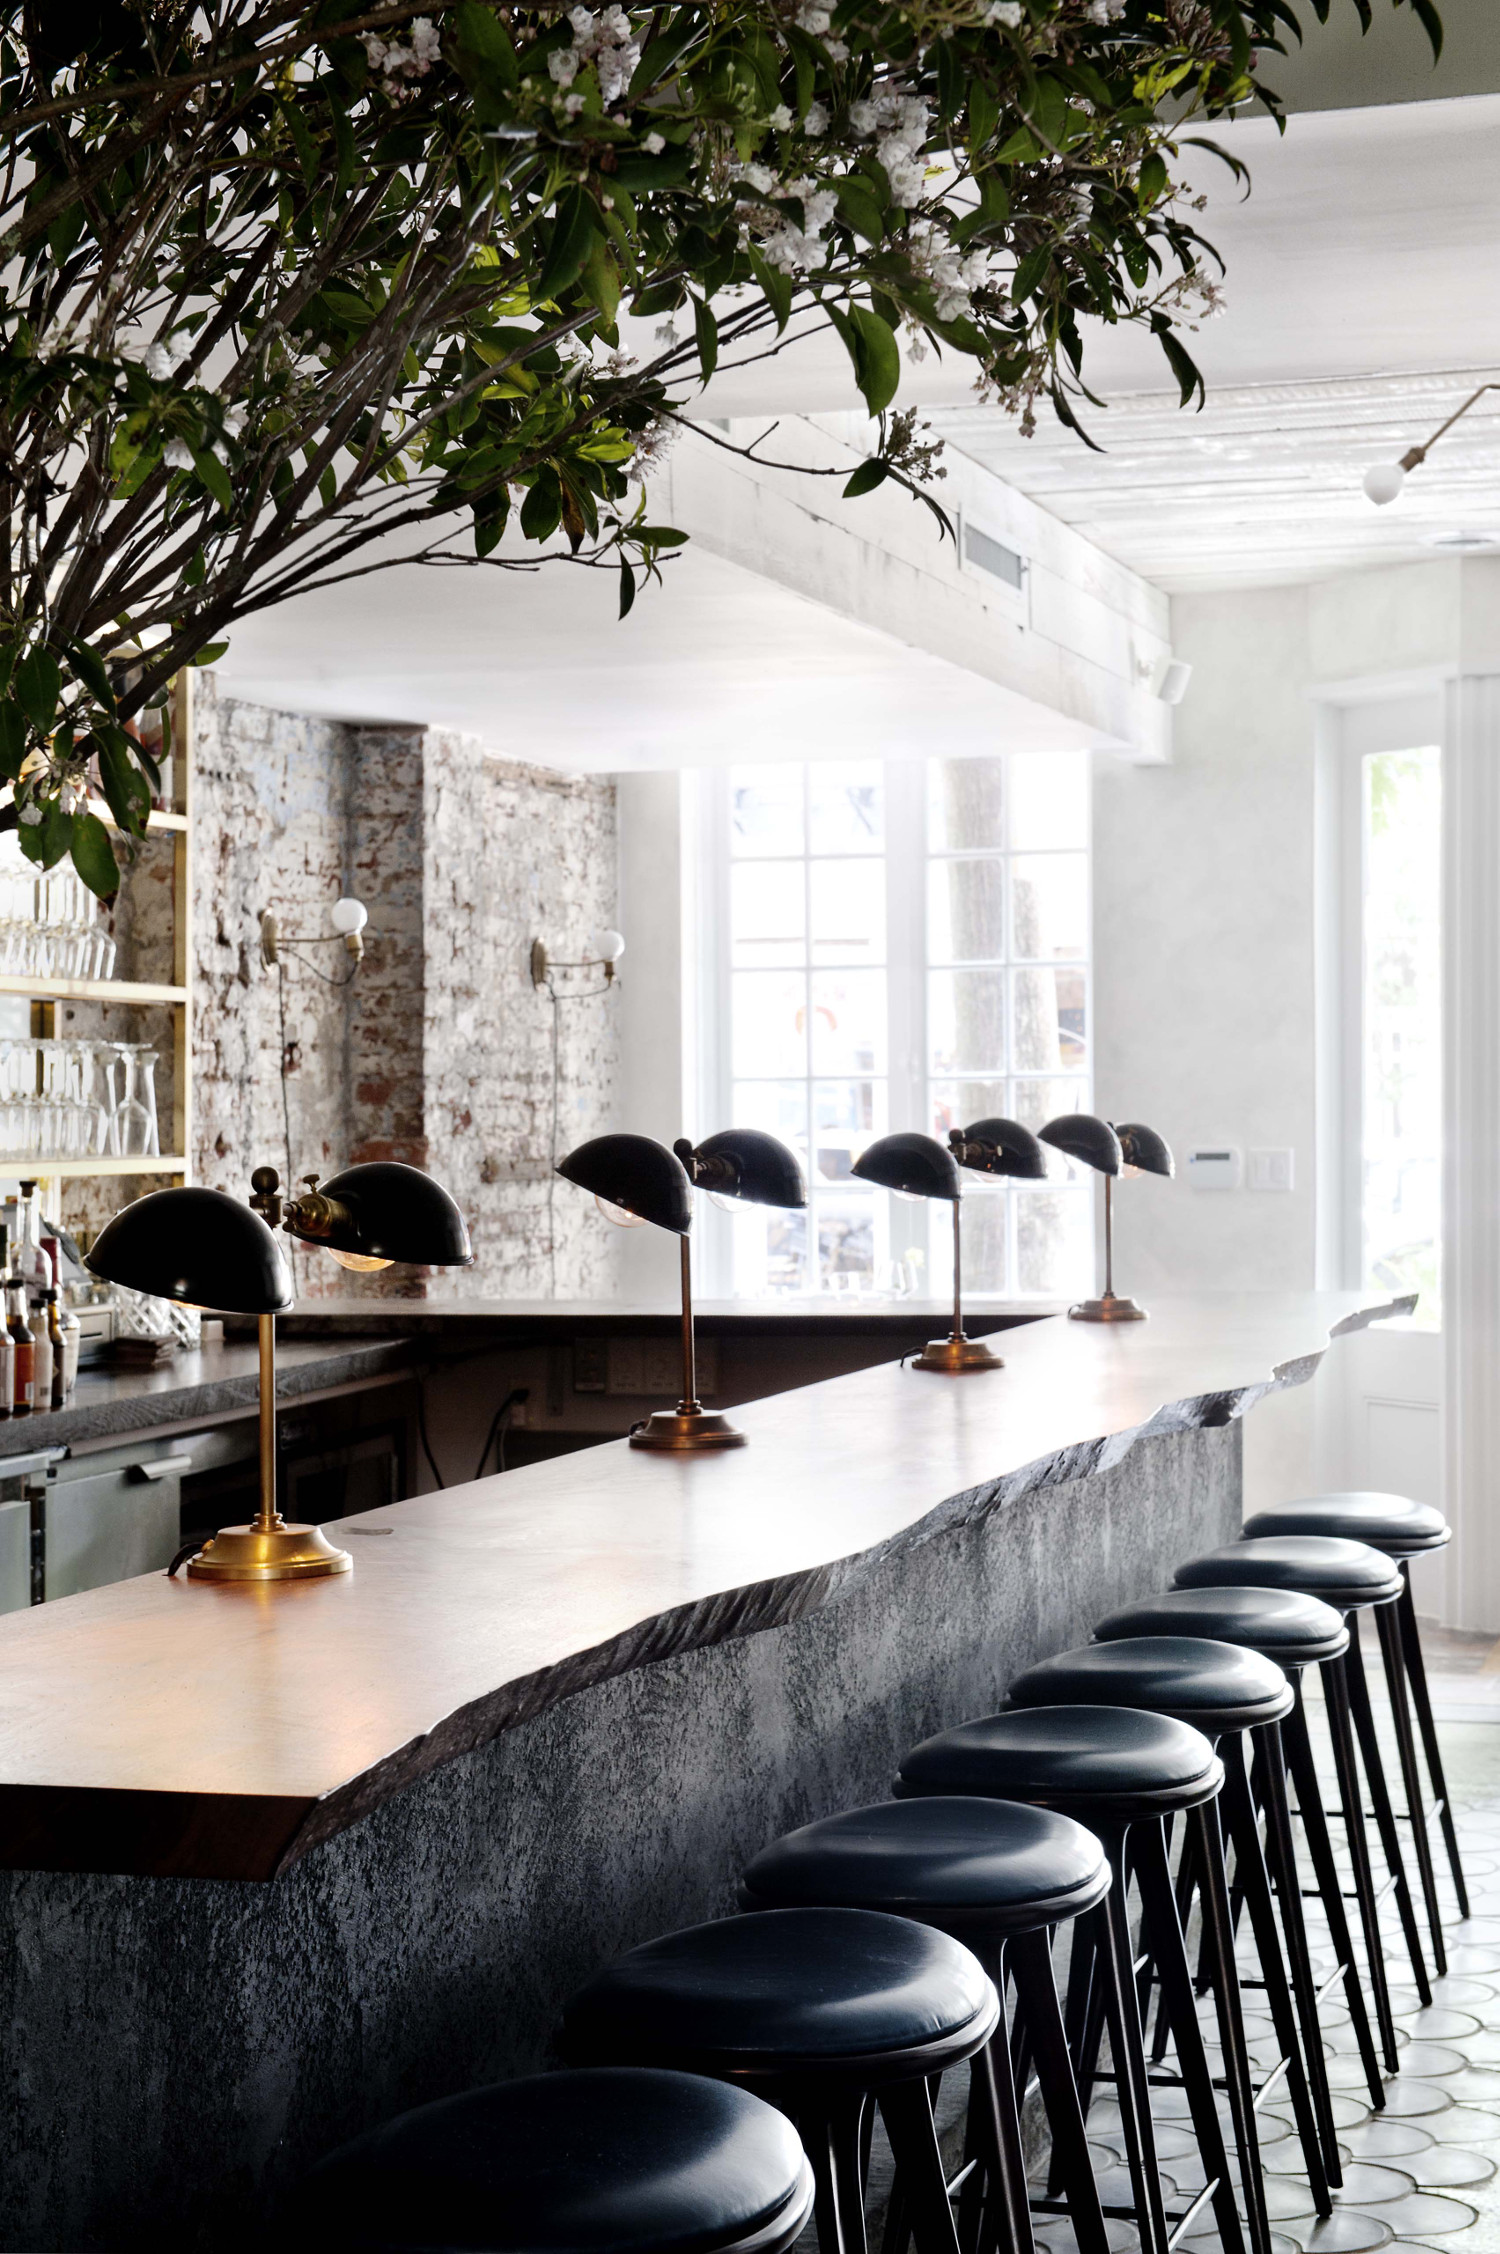 Musket Room Restaurant Interior design by ALEXANDER WATERWORTH INTERIORS Via Design Studio 210